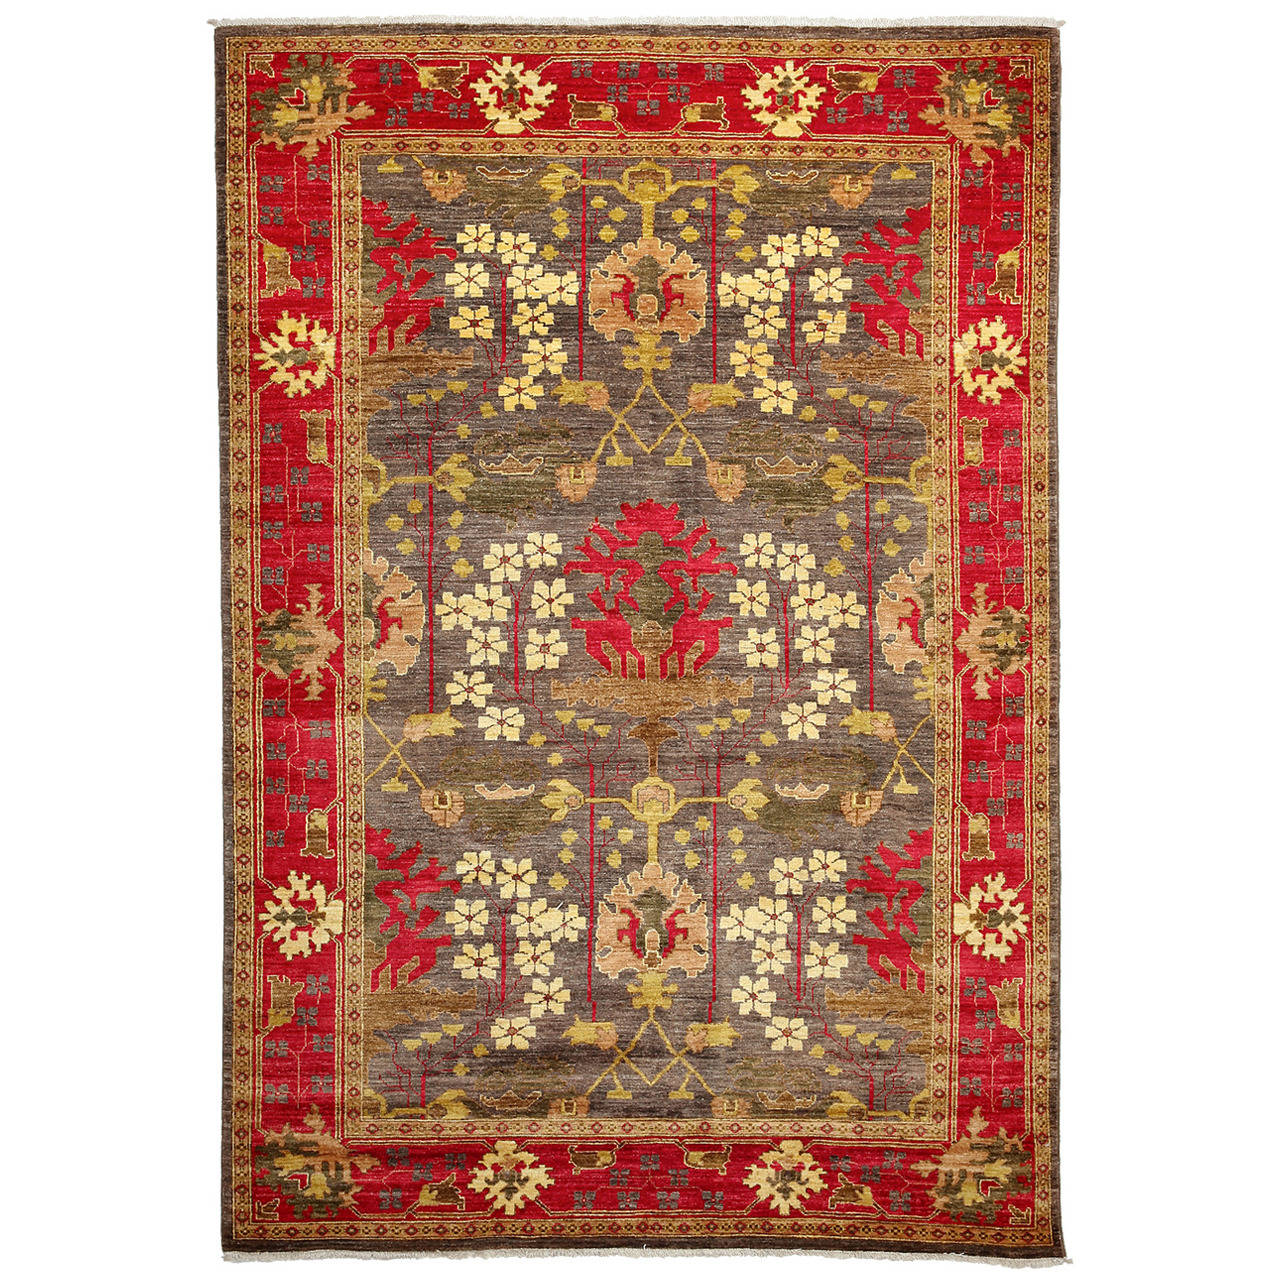 arts and crafts rugs persian type. Black Bedroom Furniture Sets. Home Design Ideas